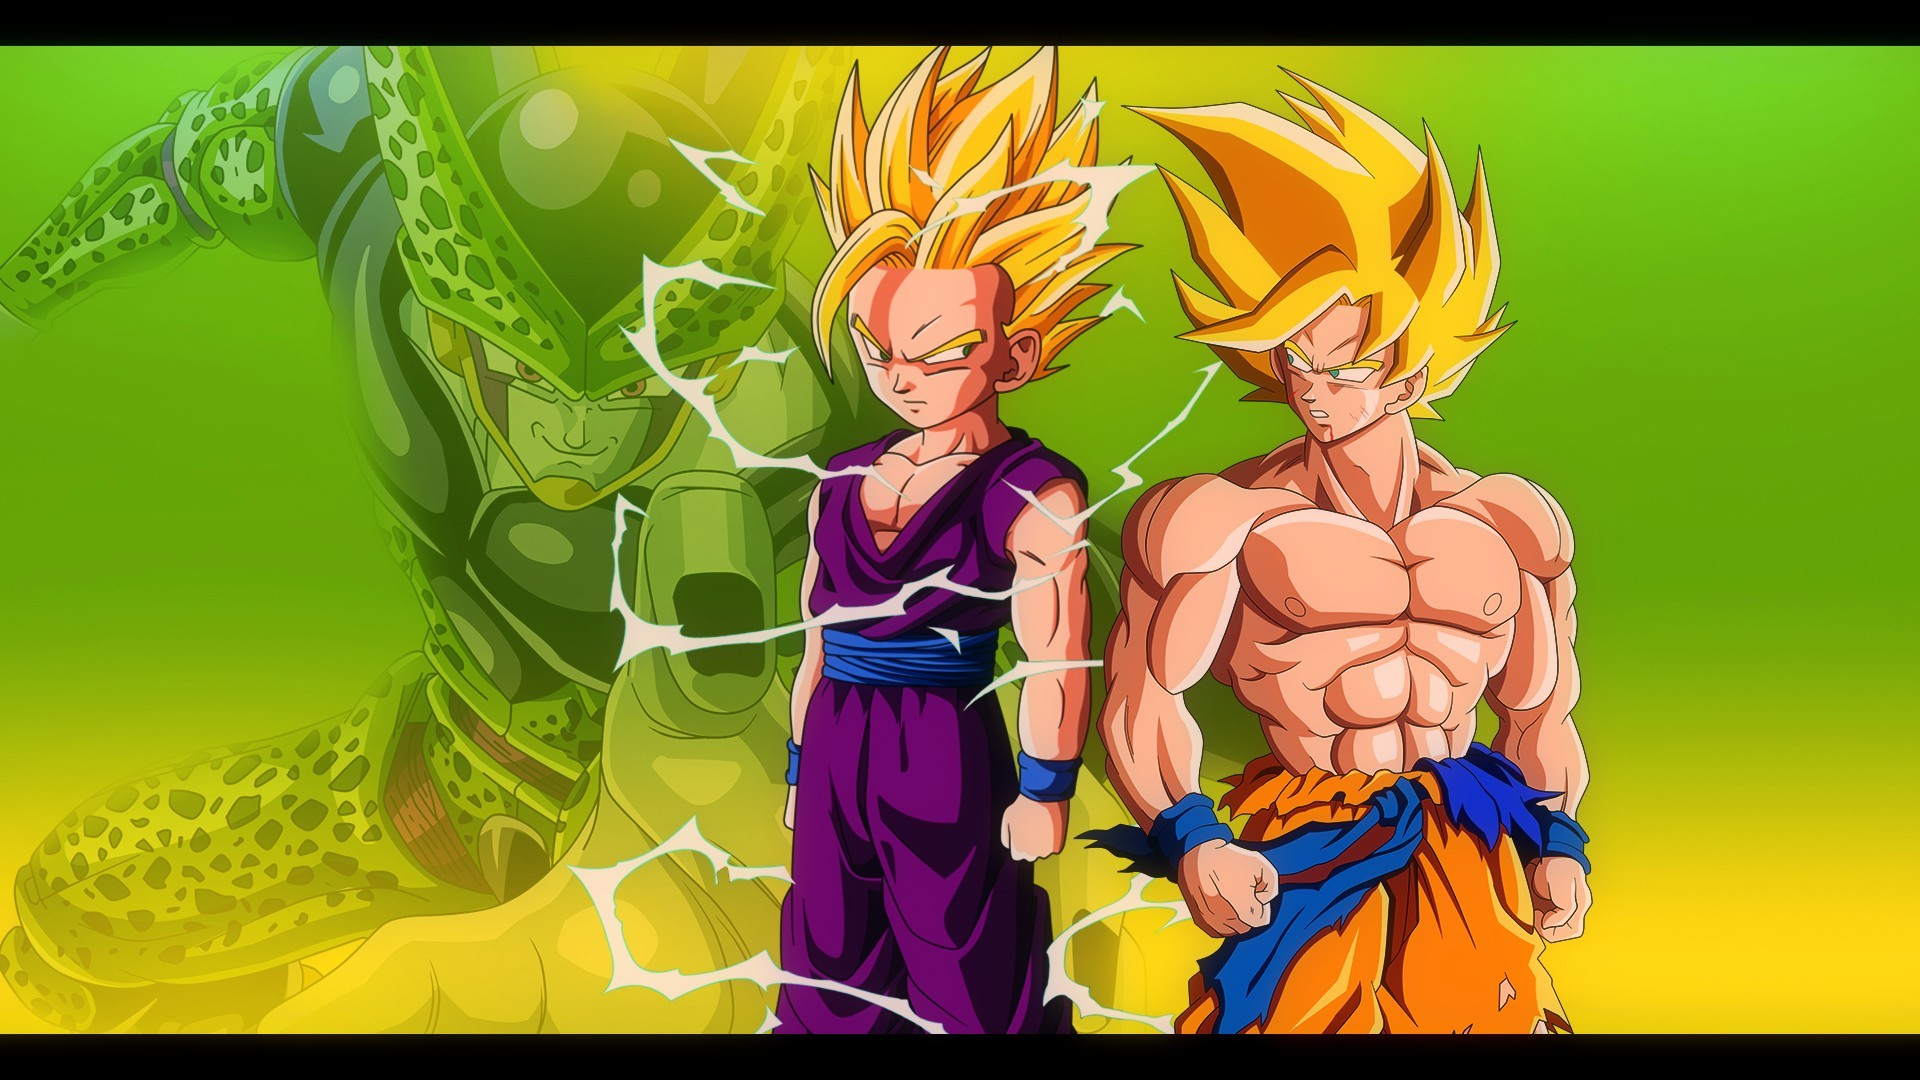 Goku and Gohan vs Cell – DBZ Wallpaper 1920*1080 by Oirigns on .